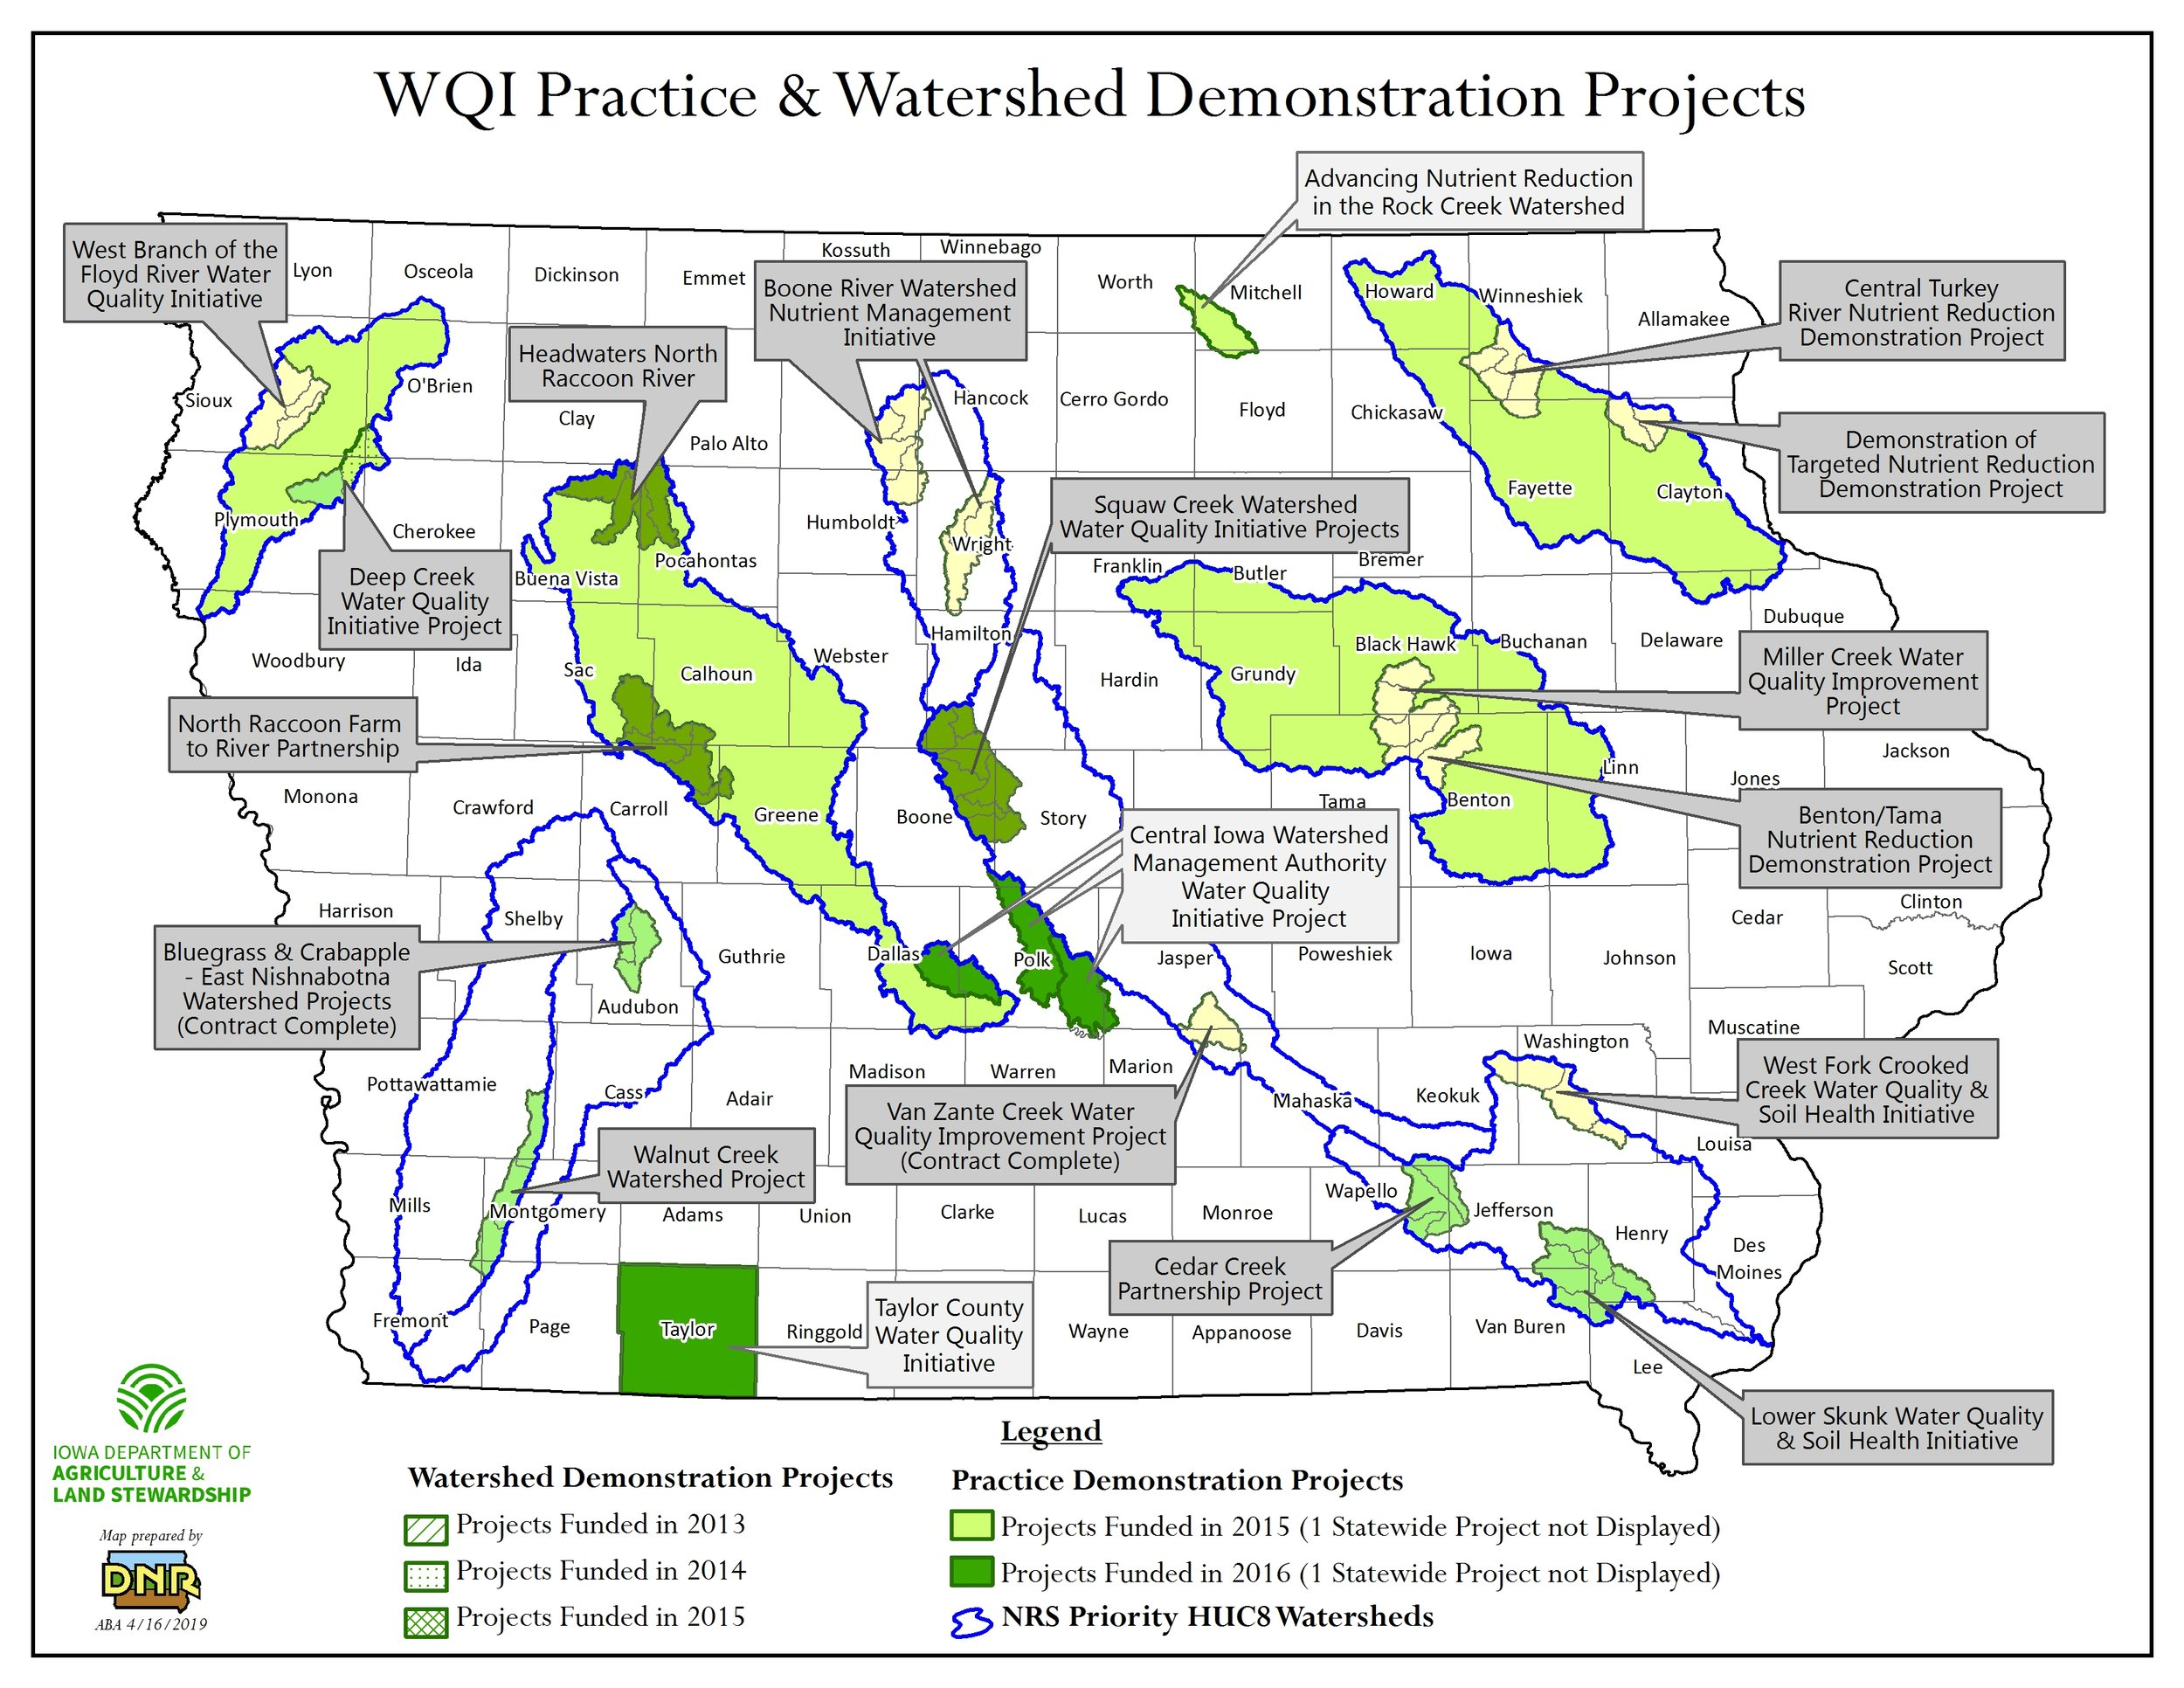 20190416WQI_Watershed_Practice_Demos_by_Year.jpg